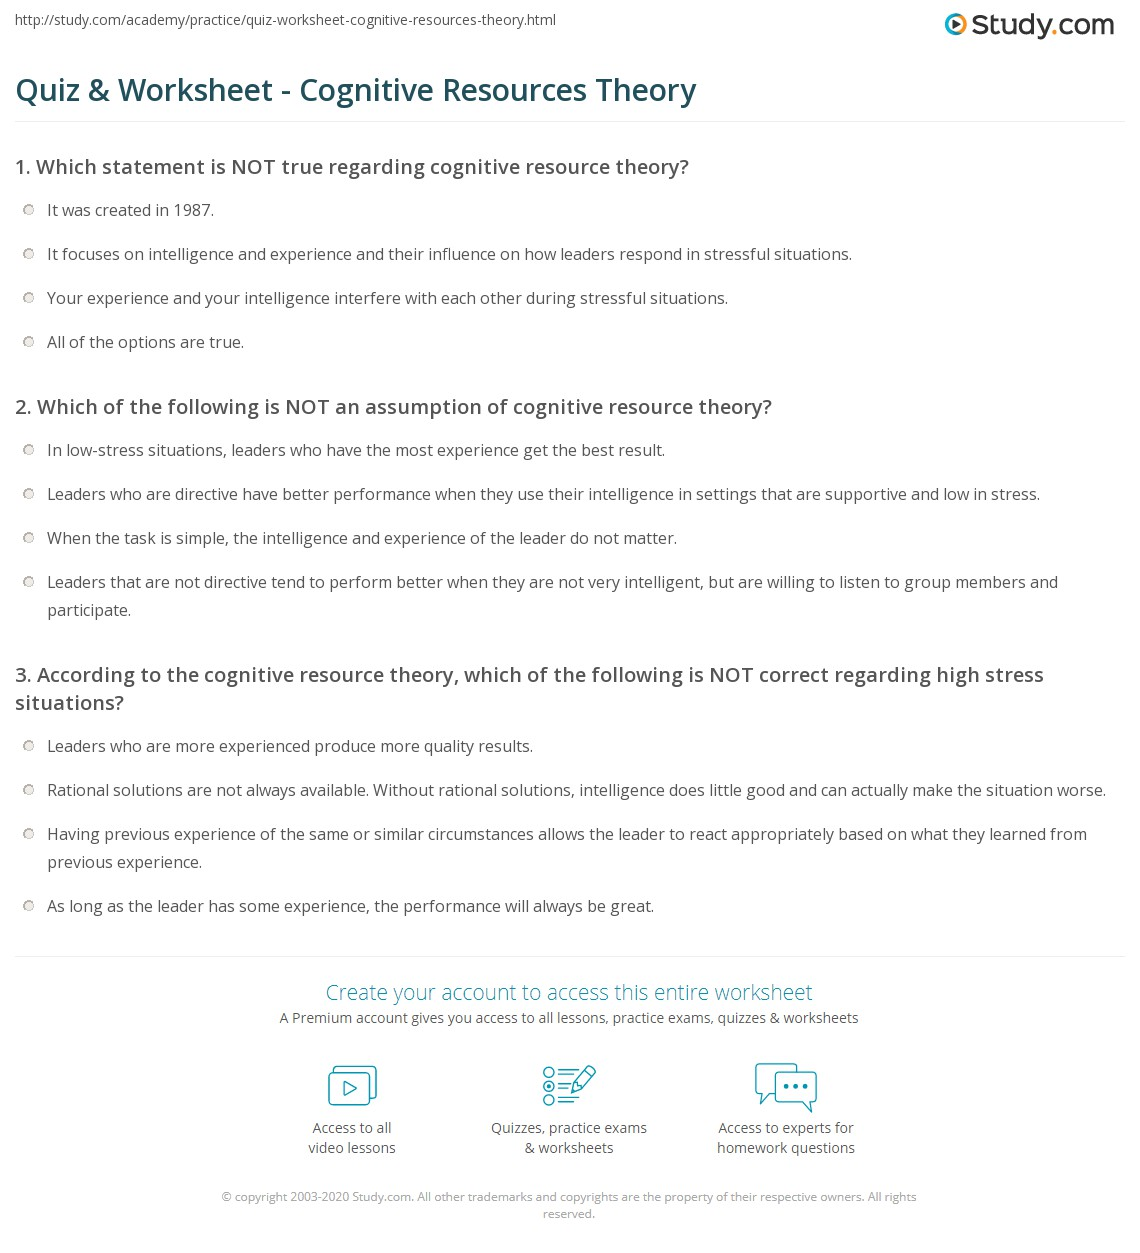 quiz & worksheet - cognitive resources theory | study